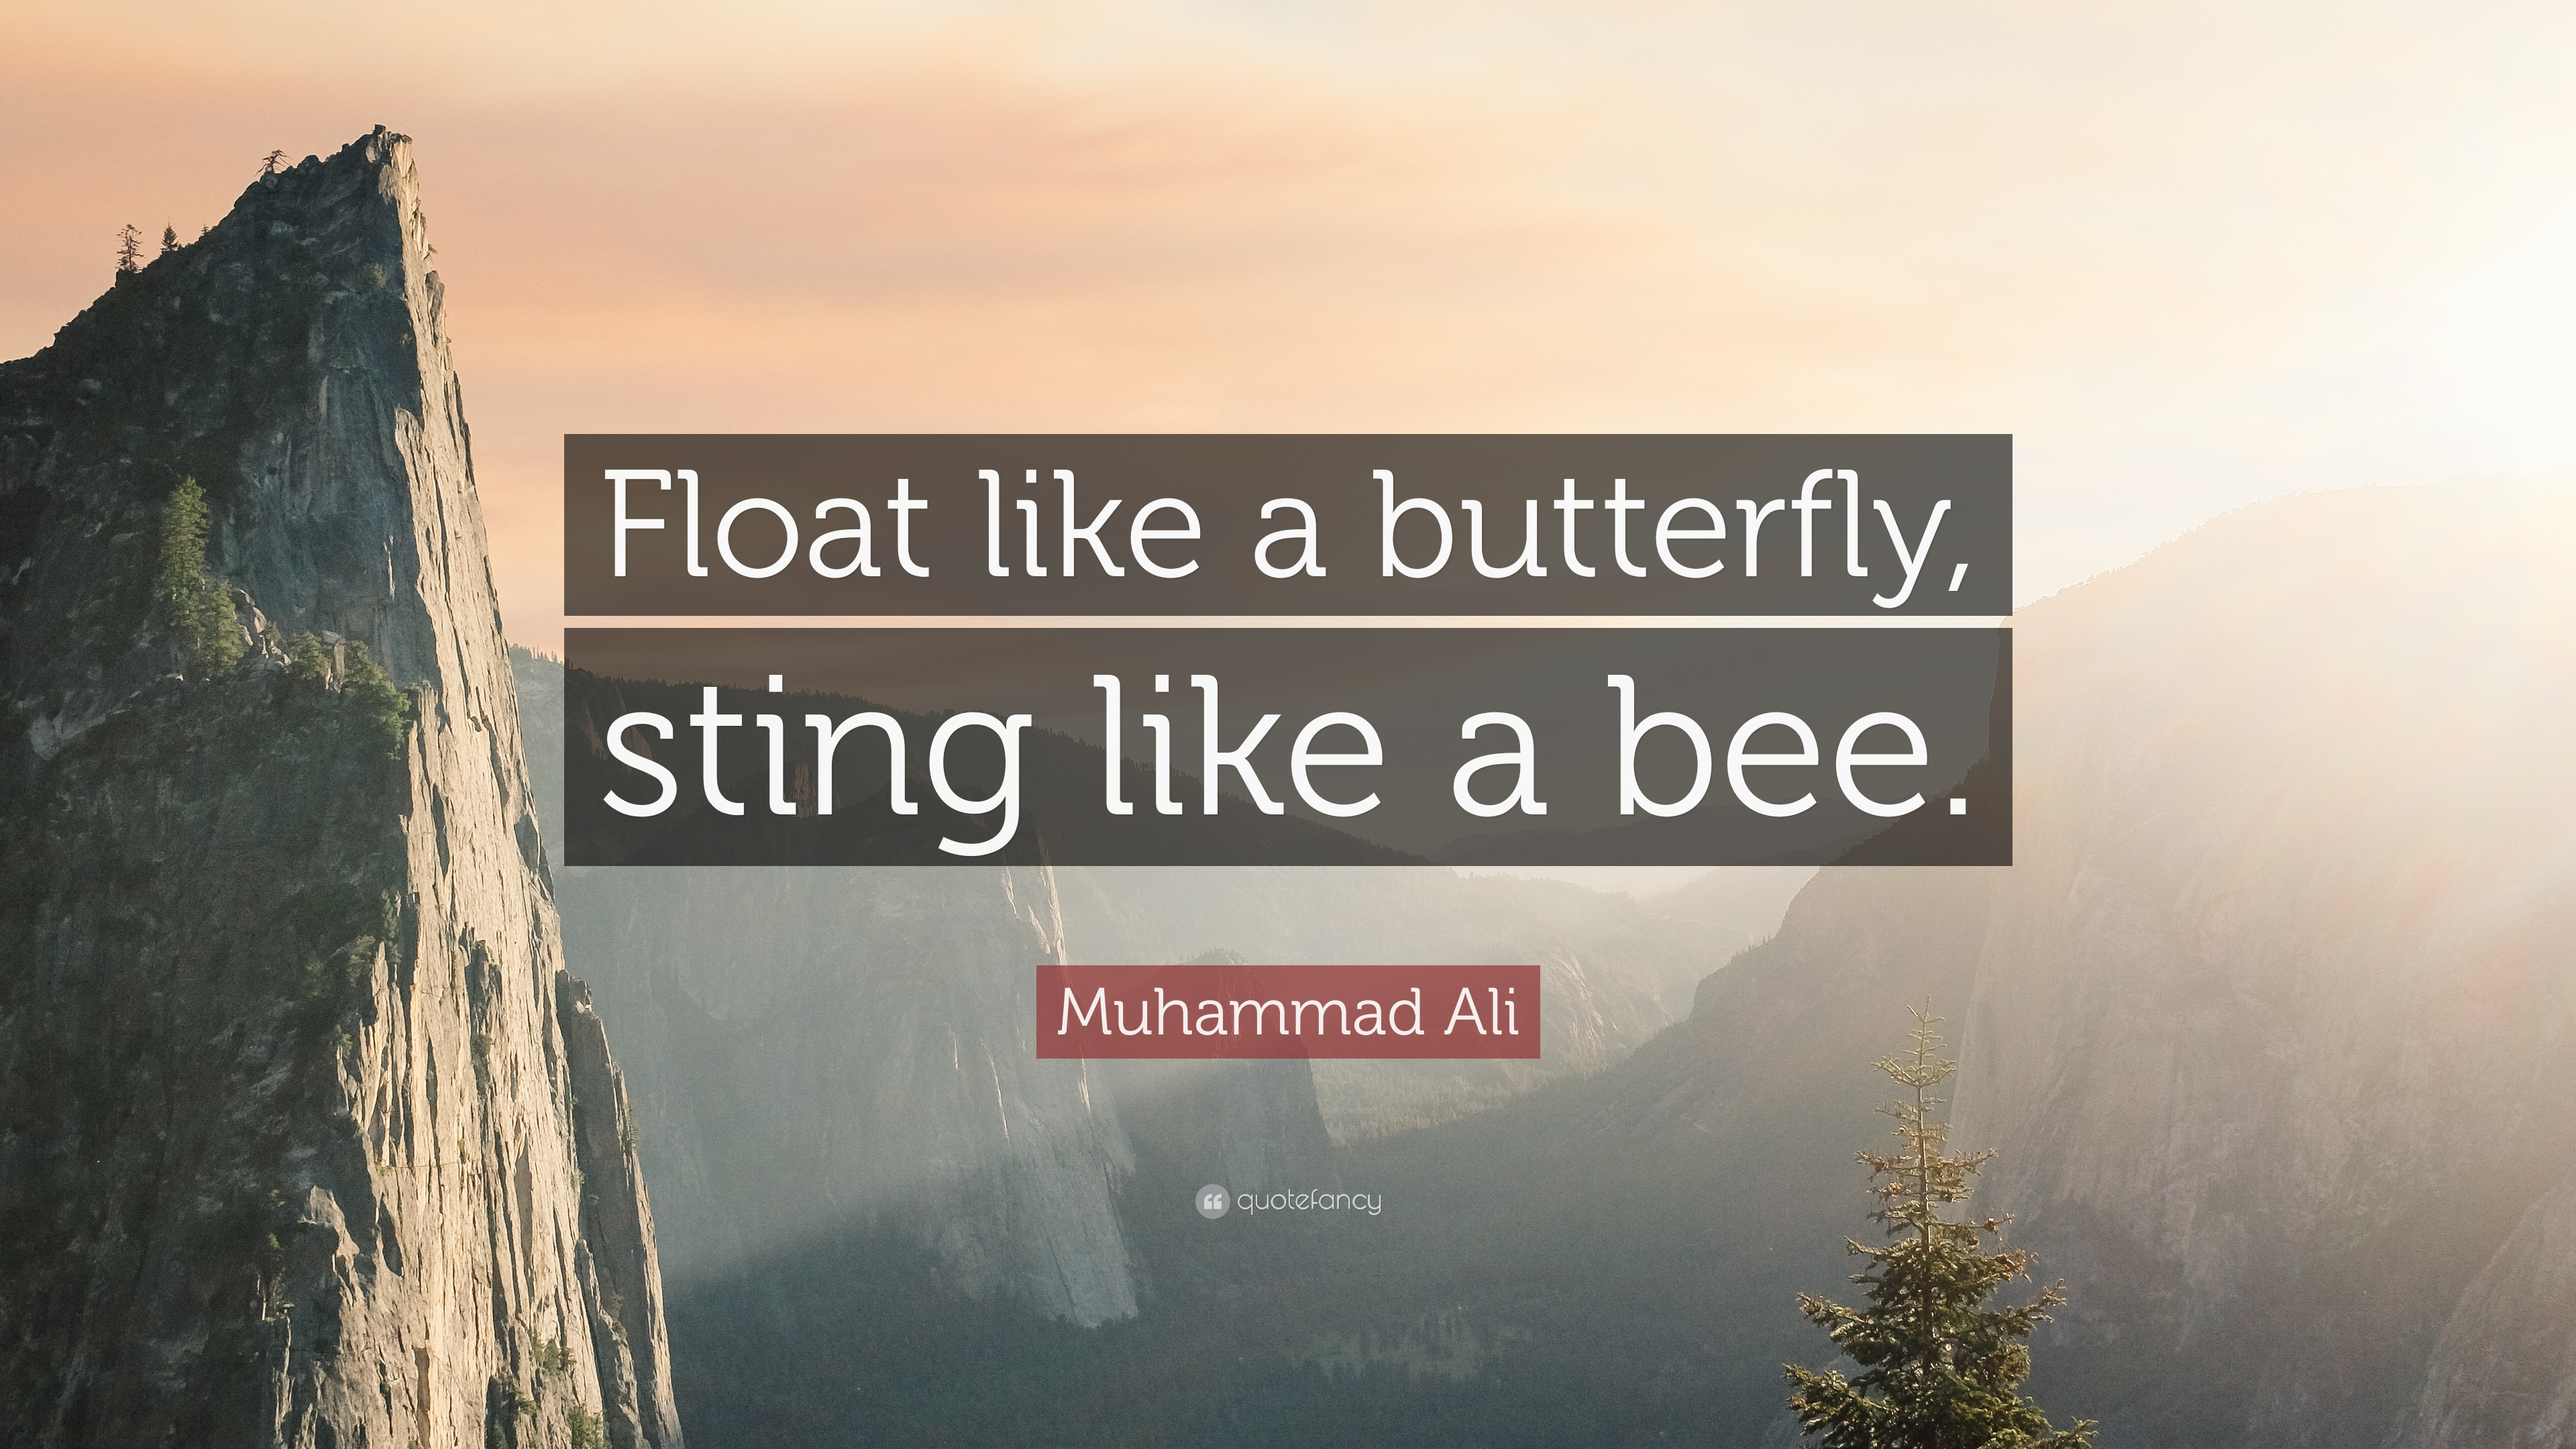 Hd Bible Quotes Wallpapers Download Float Like A Butterfly Sting Like A Bee Wallpaper